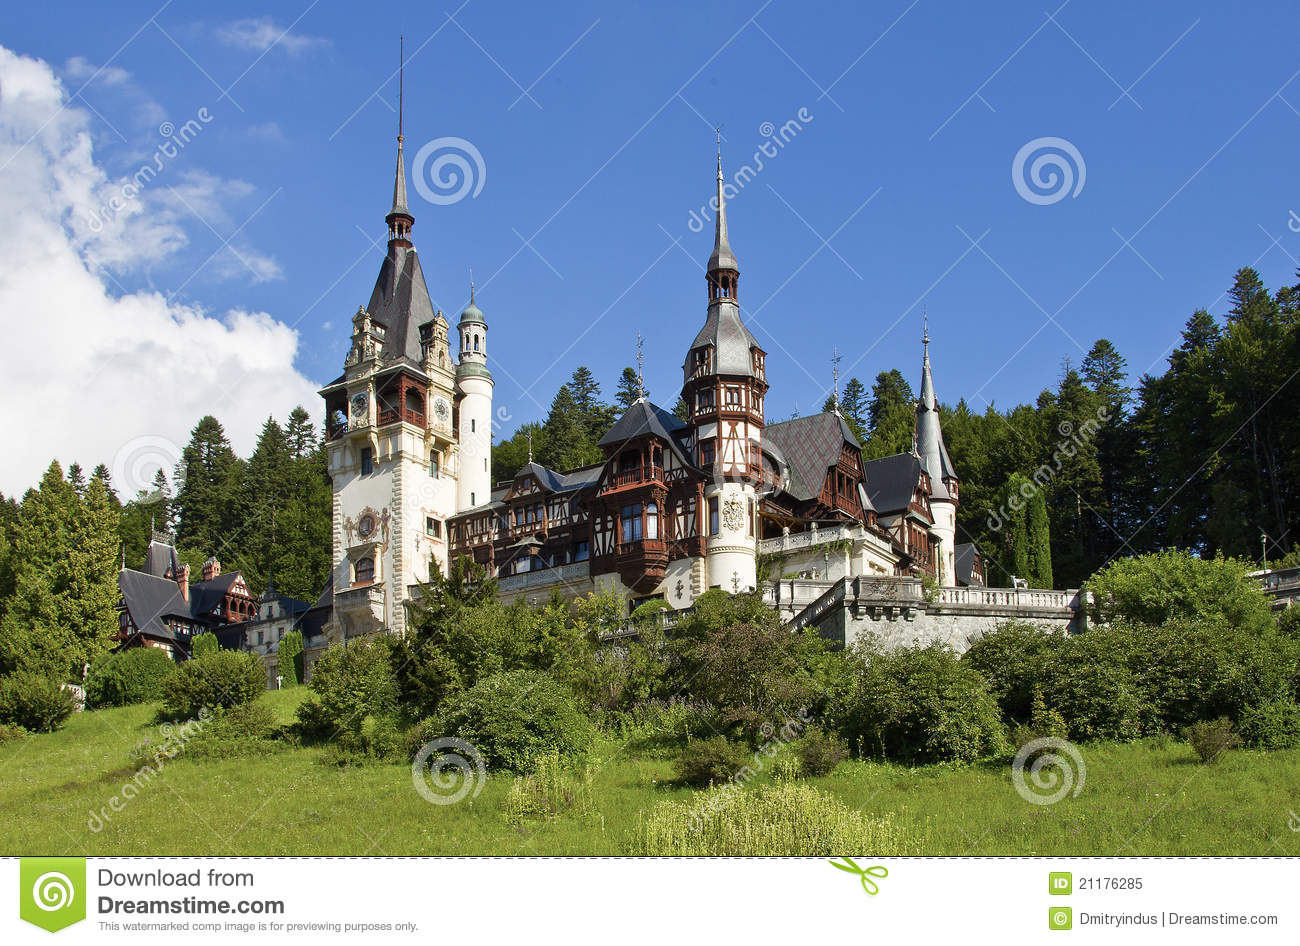 Pelesh castle in Sinaia (Romania)